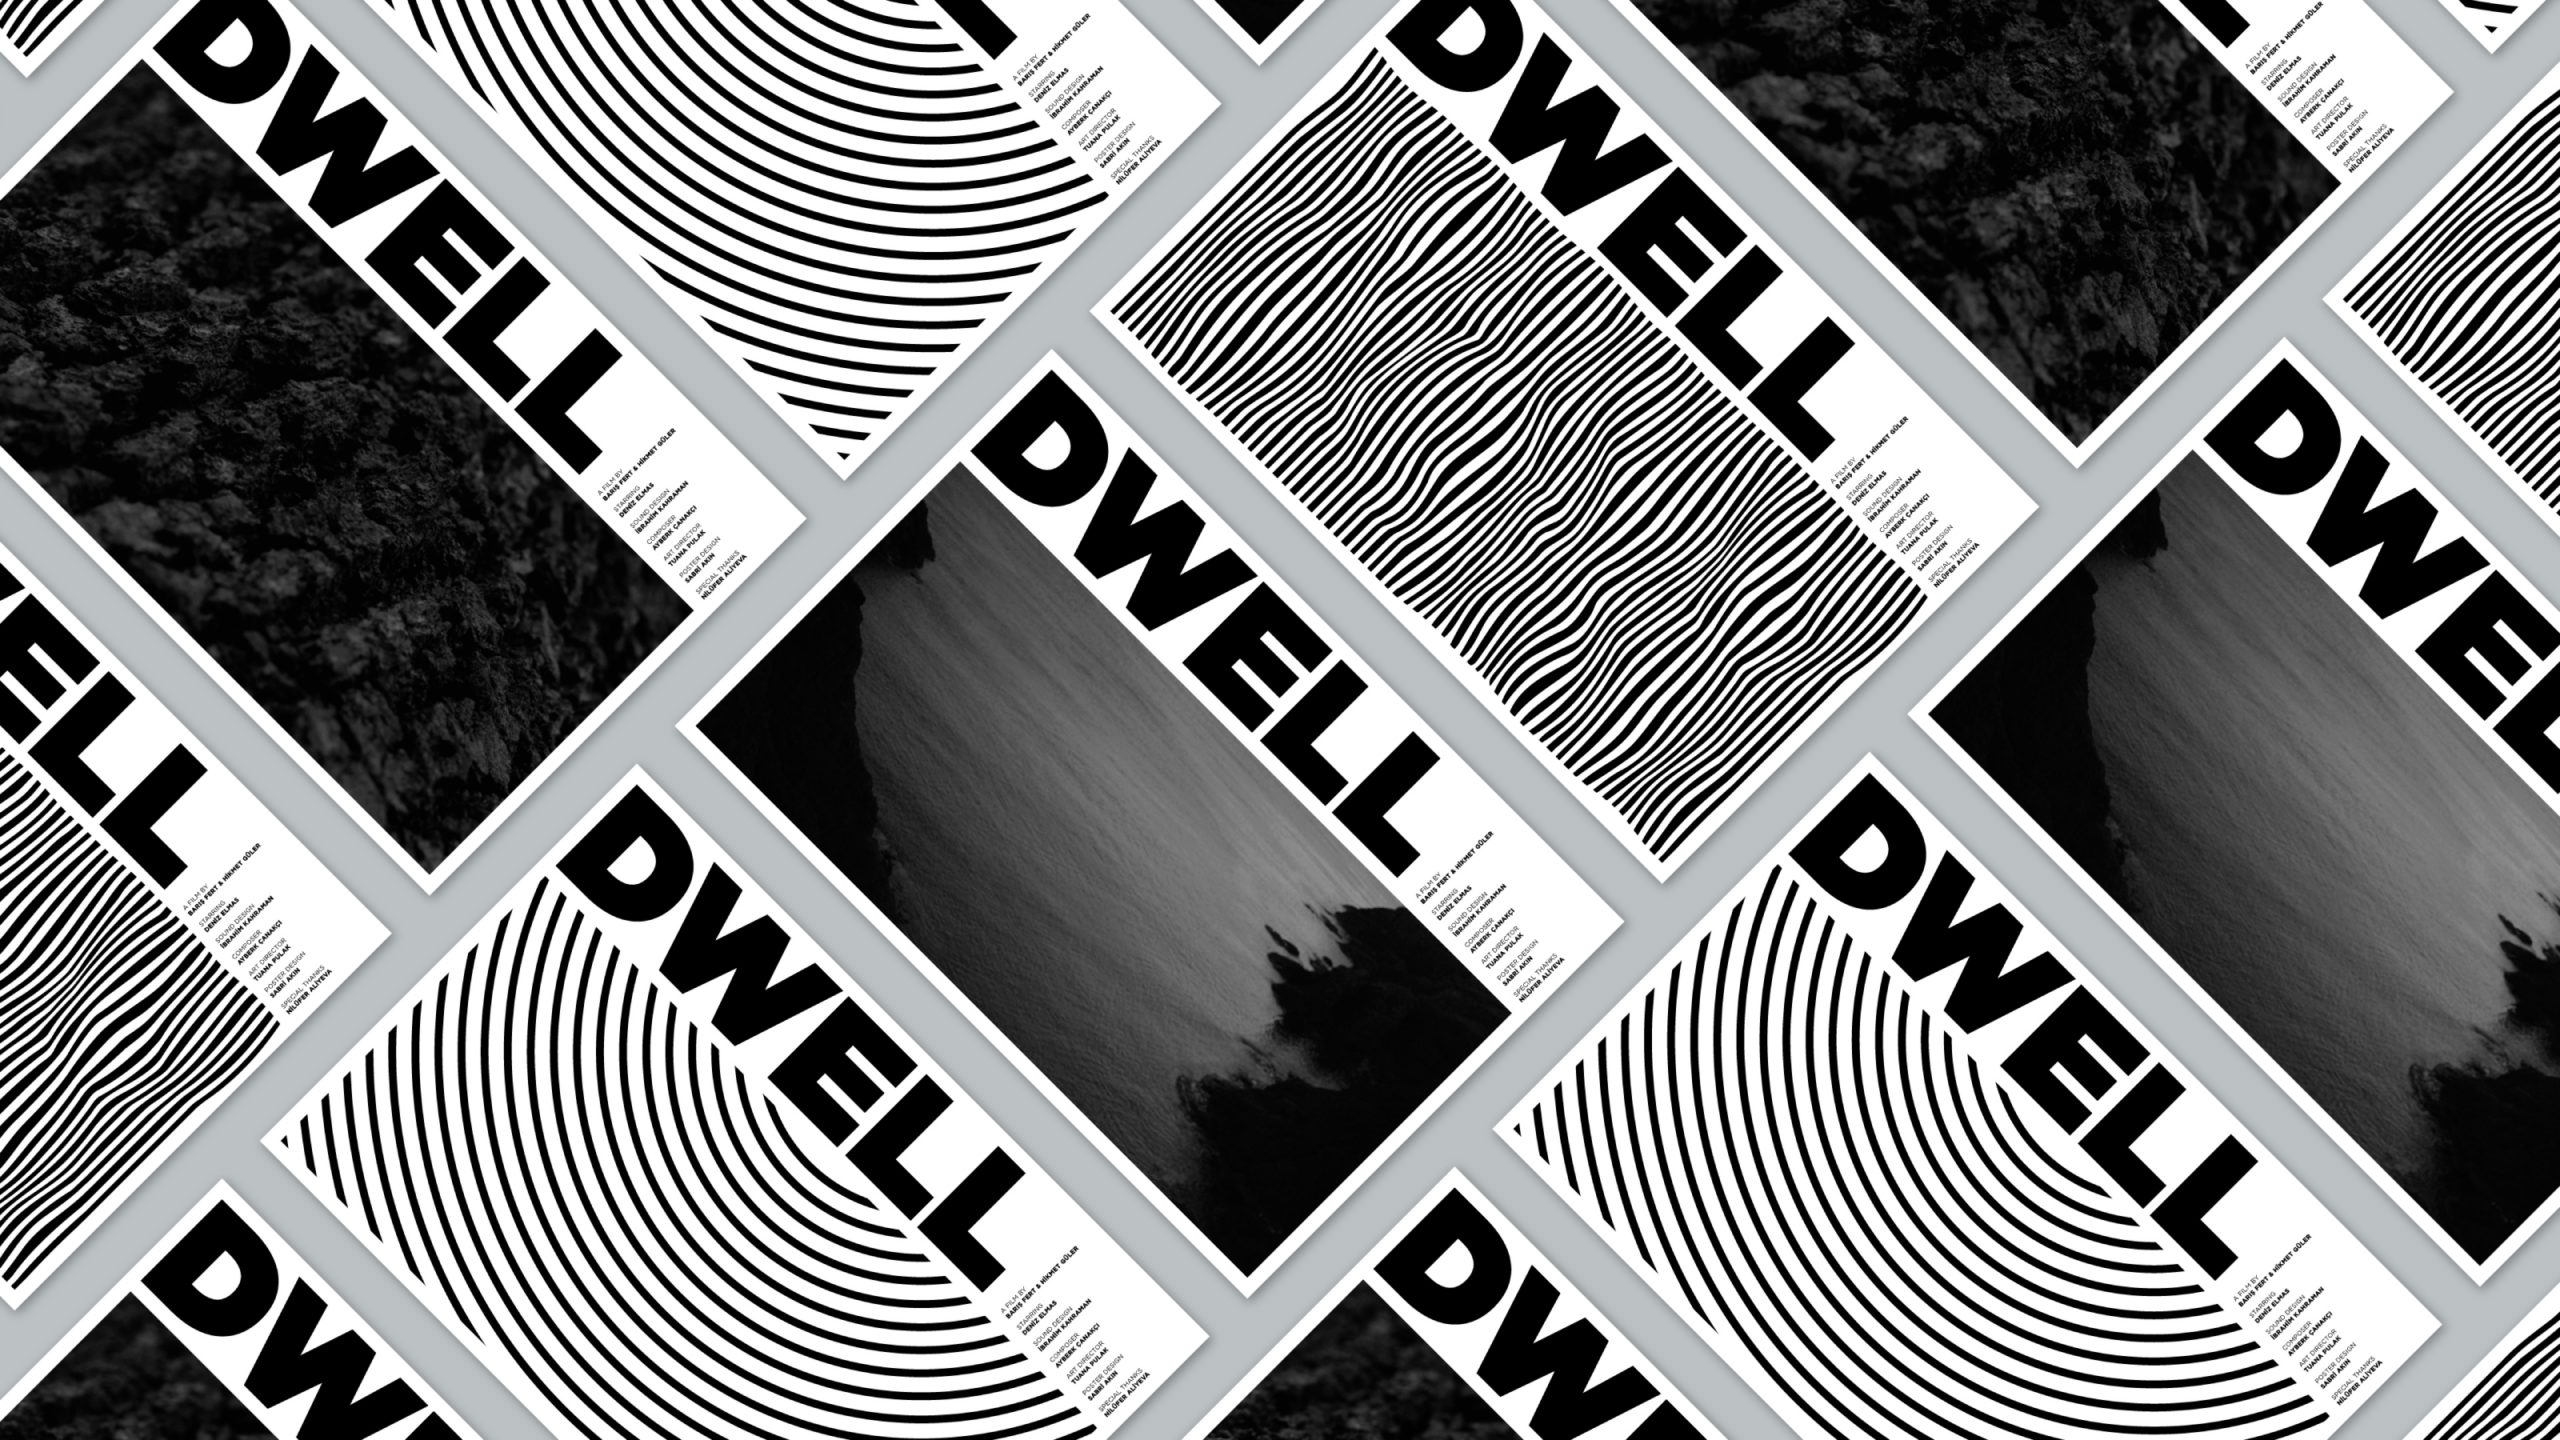 Dwell posters